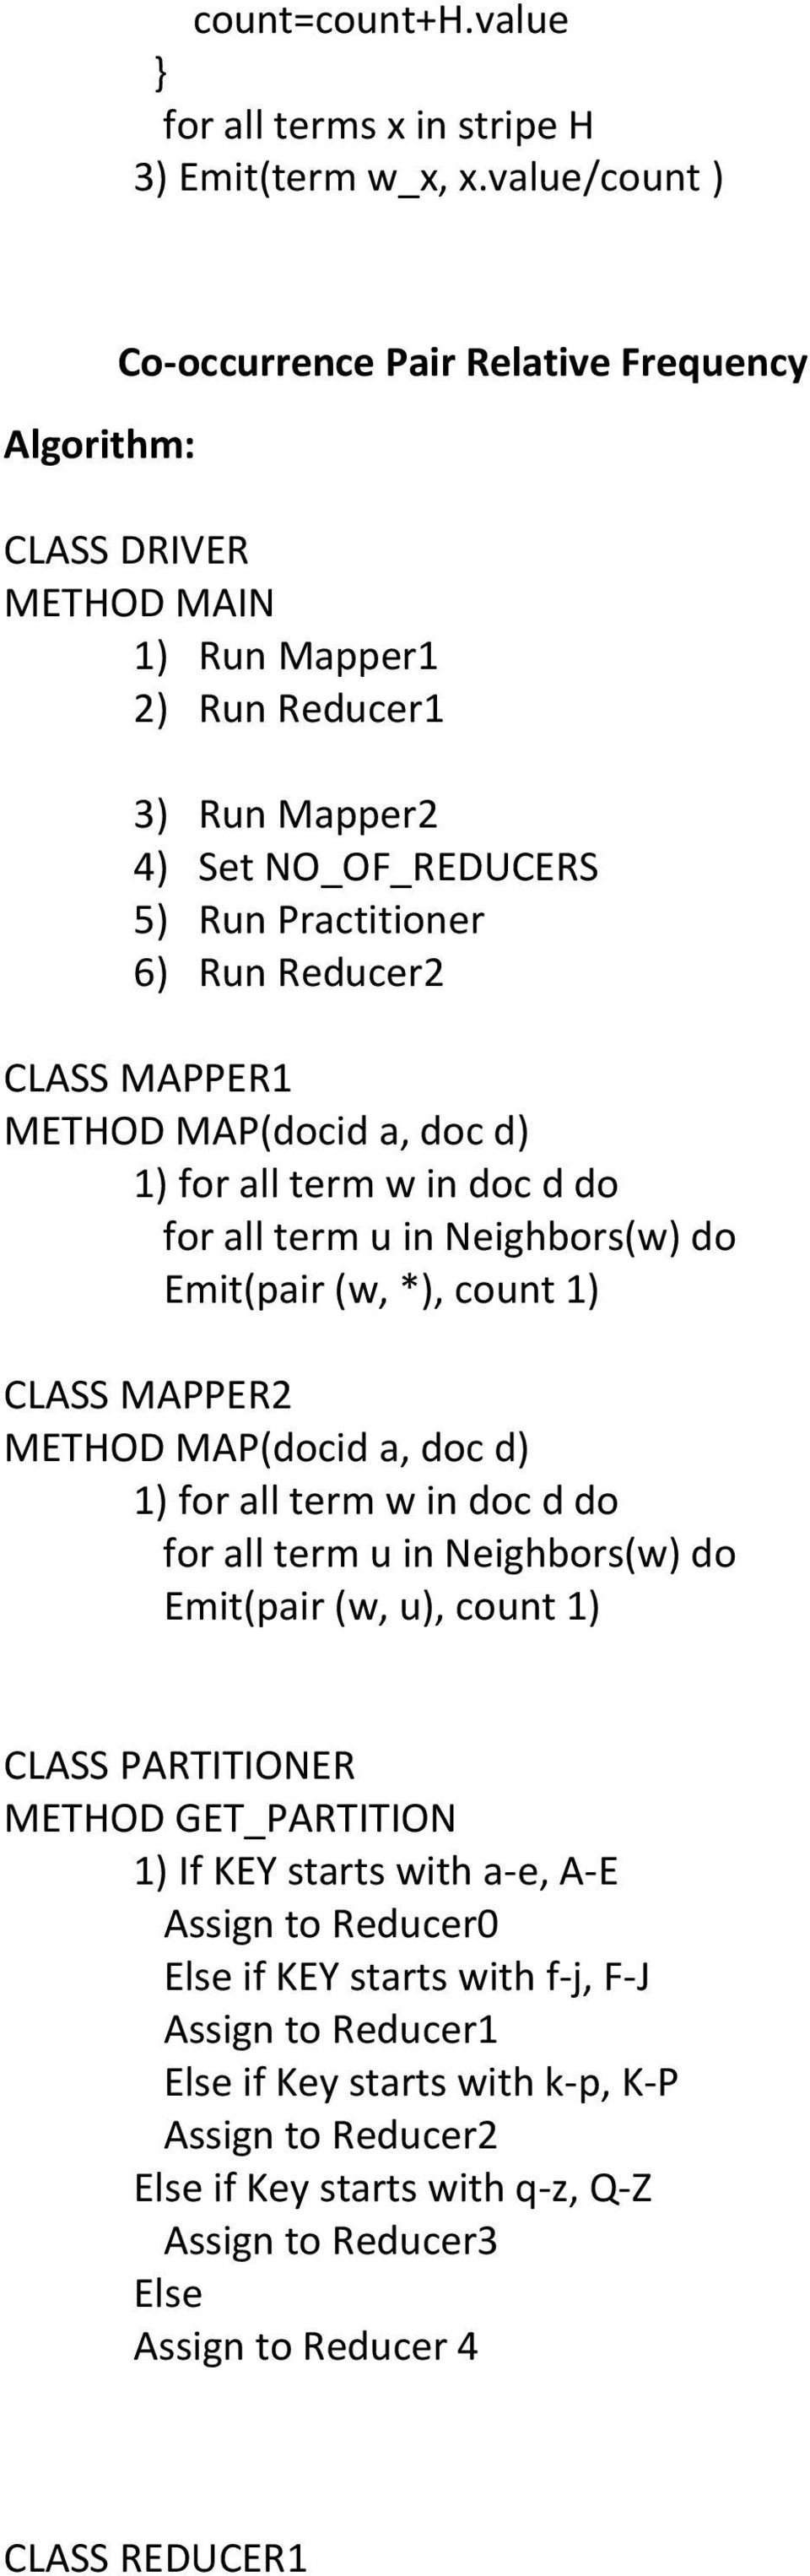 MAPPER1 METHOD MAP(docid a, doc d) 1) for all term w in doc d do for all term u in Neighbors(w) do Emit(pair (w, *), count 1) CLASS MAPPER2 METHOD MAP(docid a, doc d) 1) for all term w in doc d do